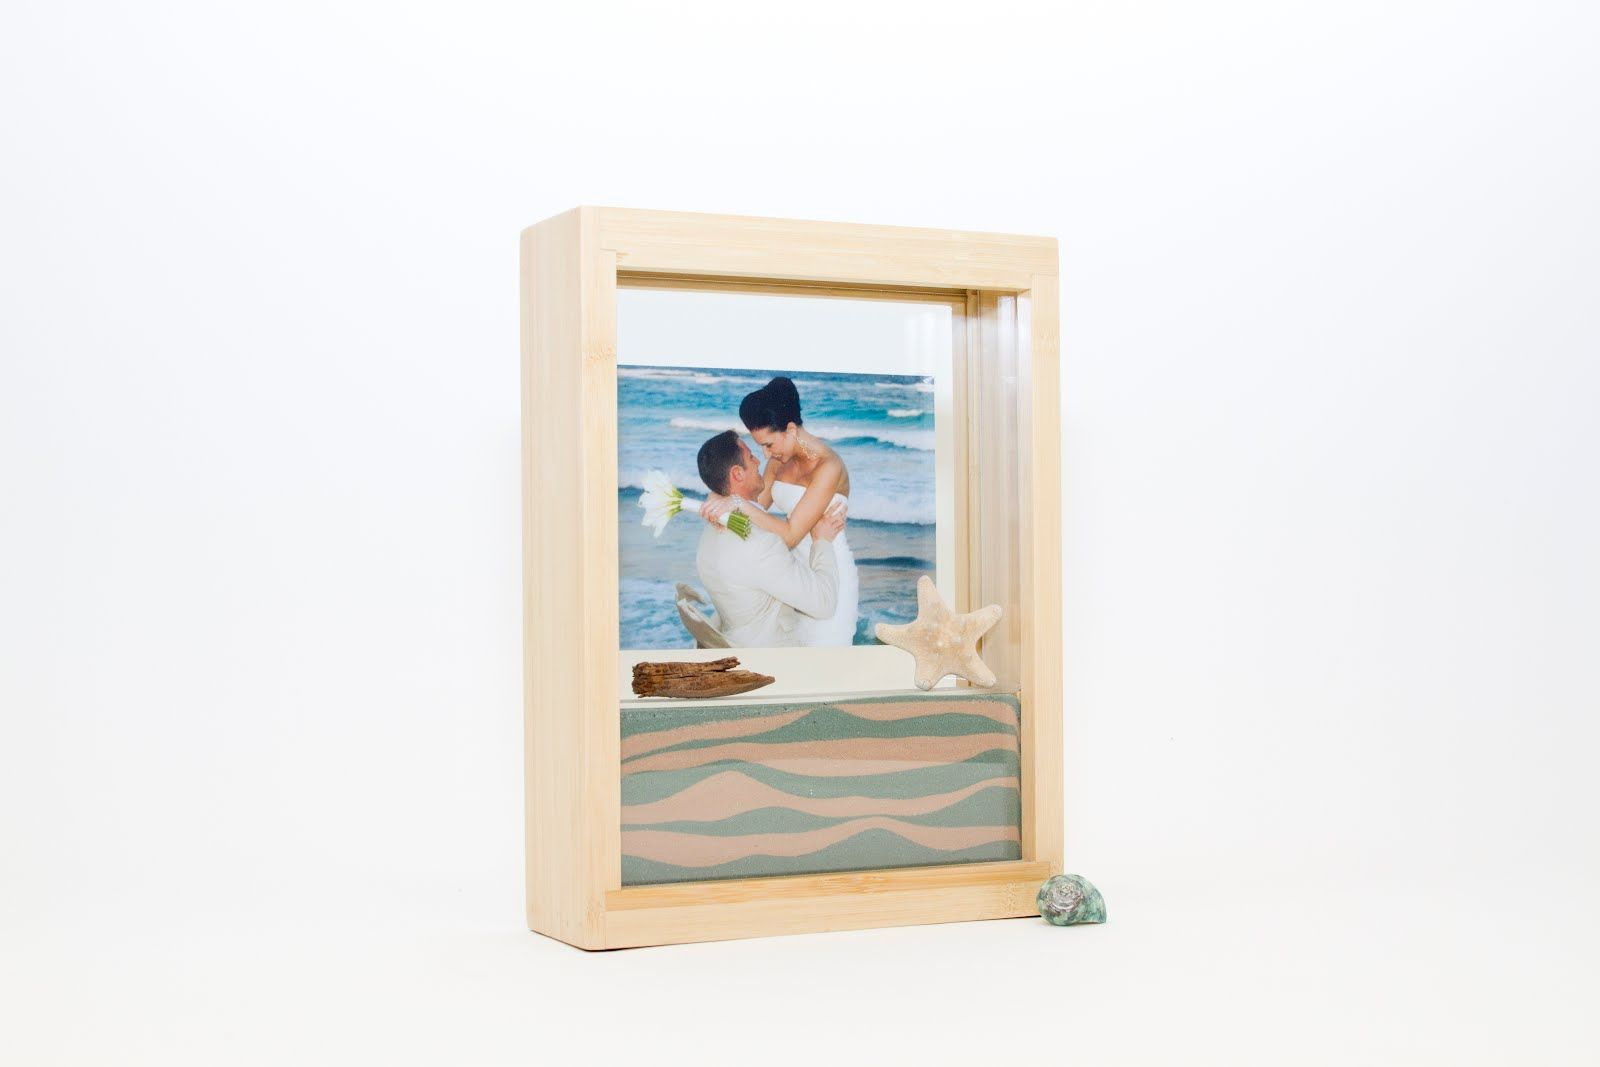 Beach wedding sand ceremony sets  Bamboo Forever Frame perfect for vow renewal vow renewal  Vow